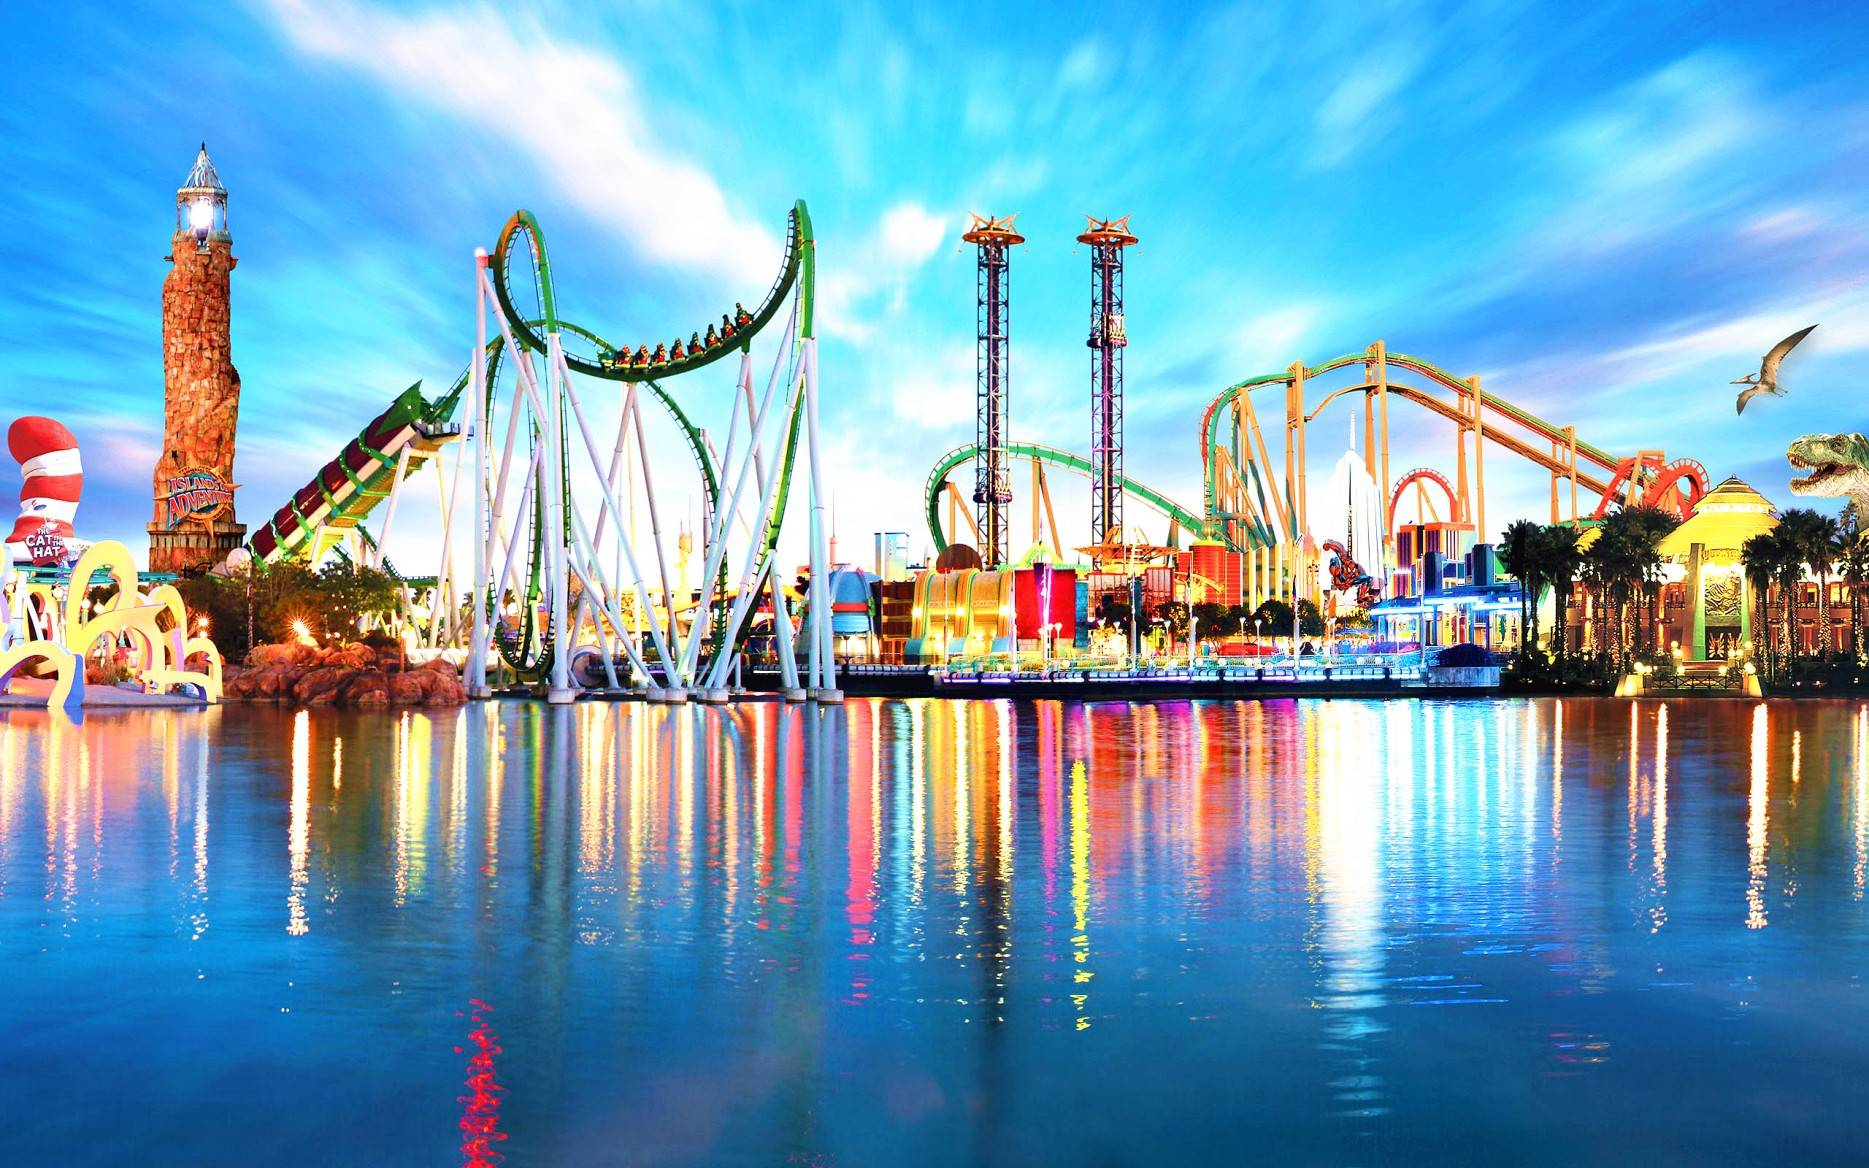 5-Day Orlando Economic Vacation Package: Theme Parks